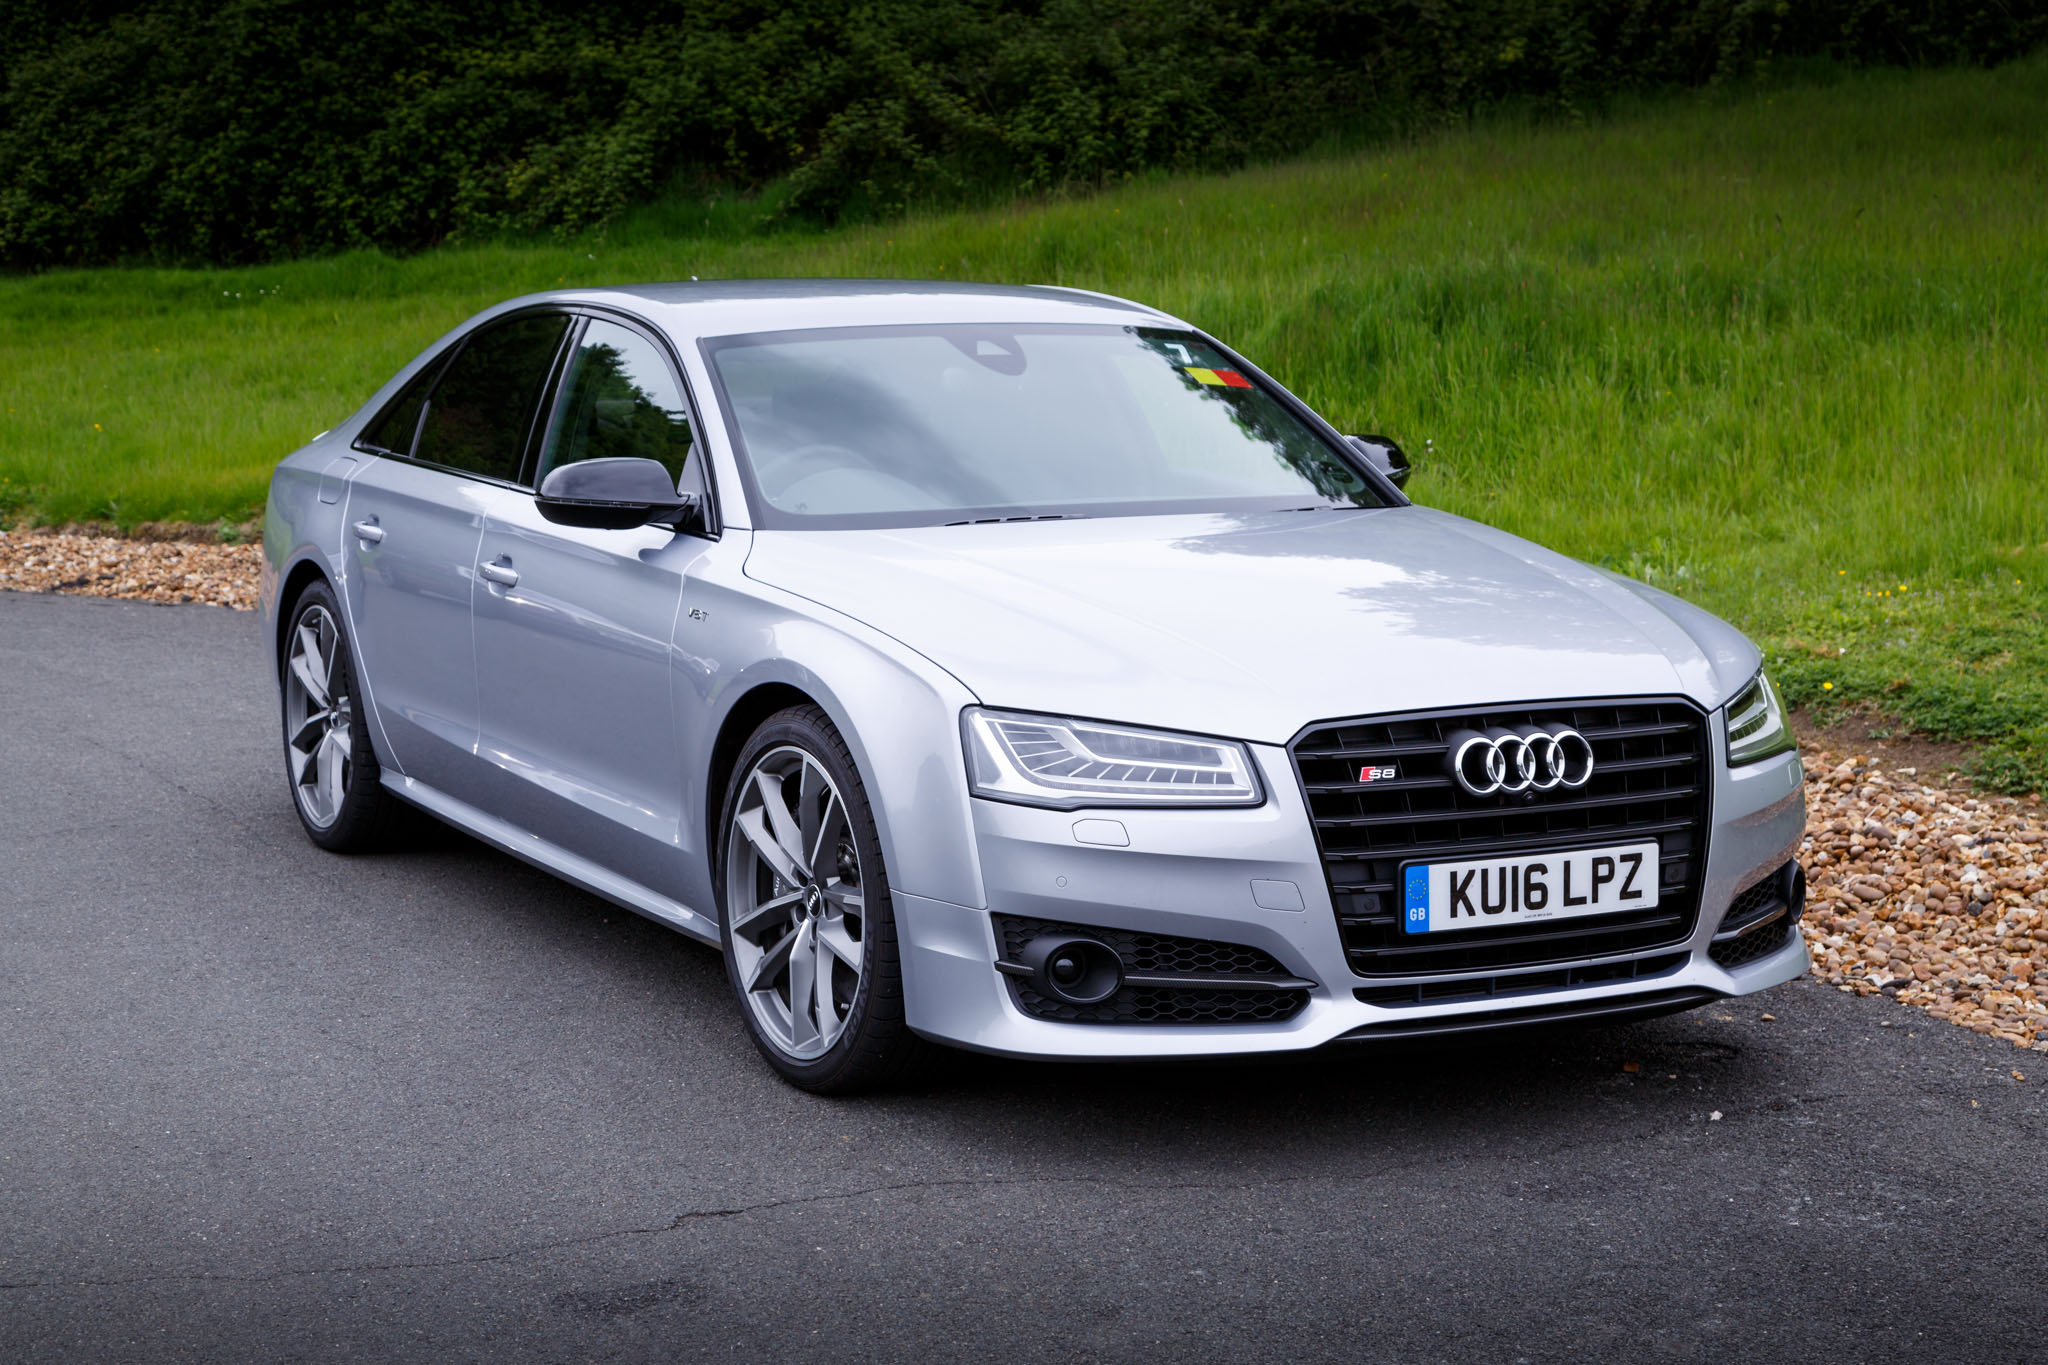 Audi 0 60 >> 2016 Audi S8 Plus TSFI Quattro Review